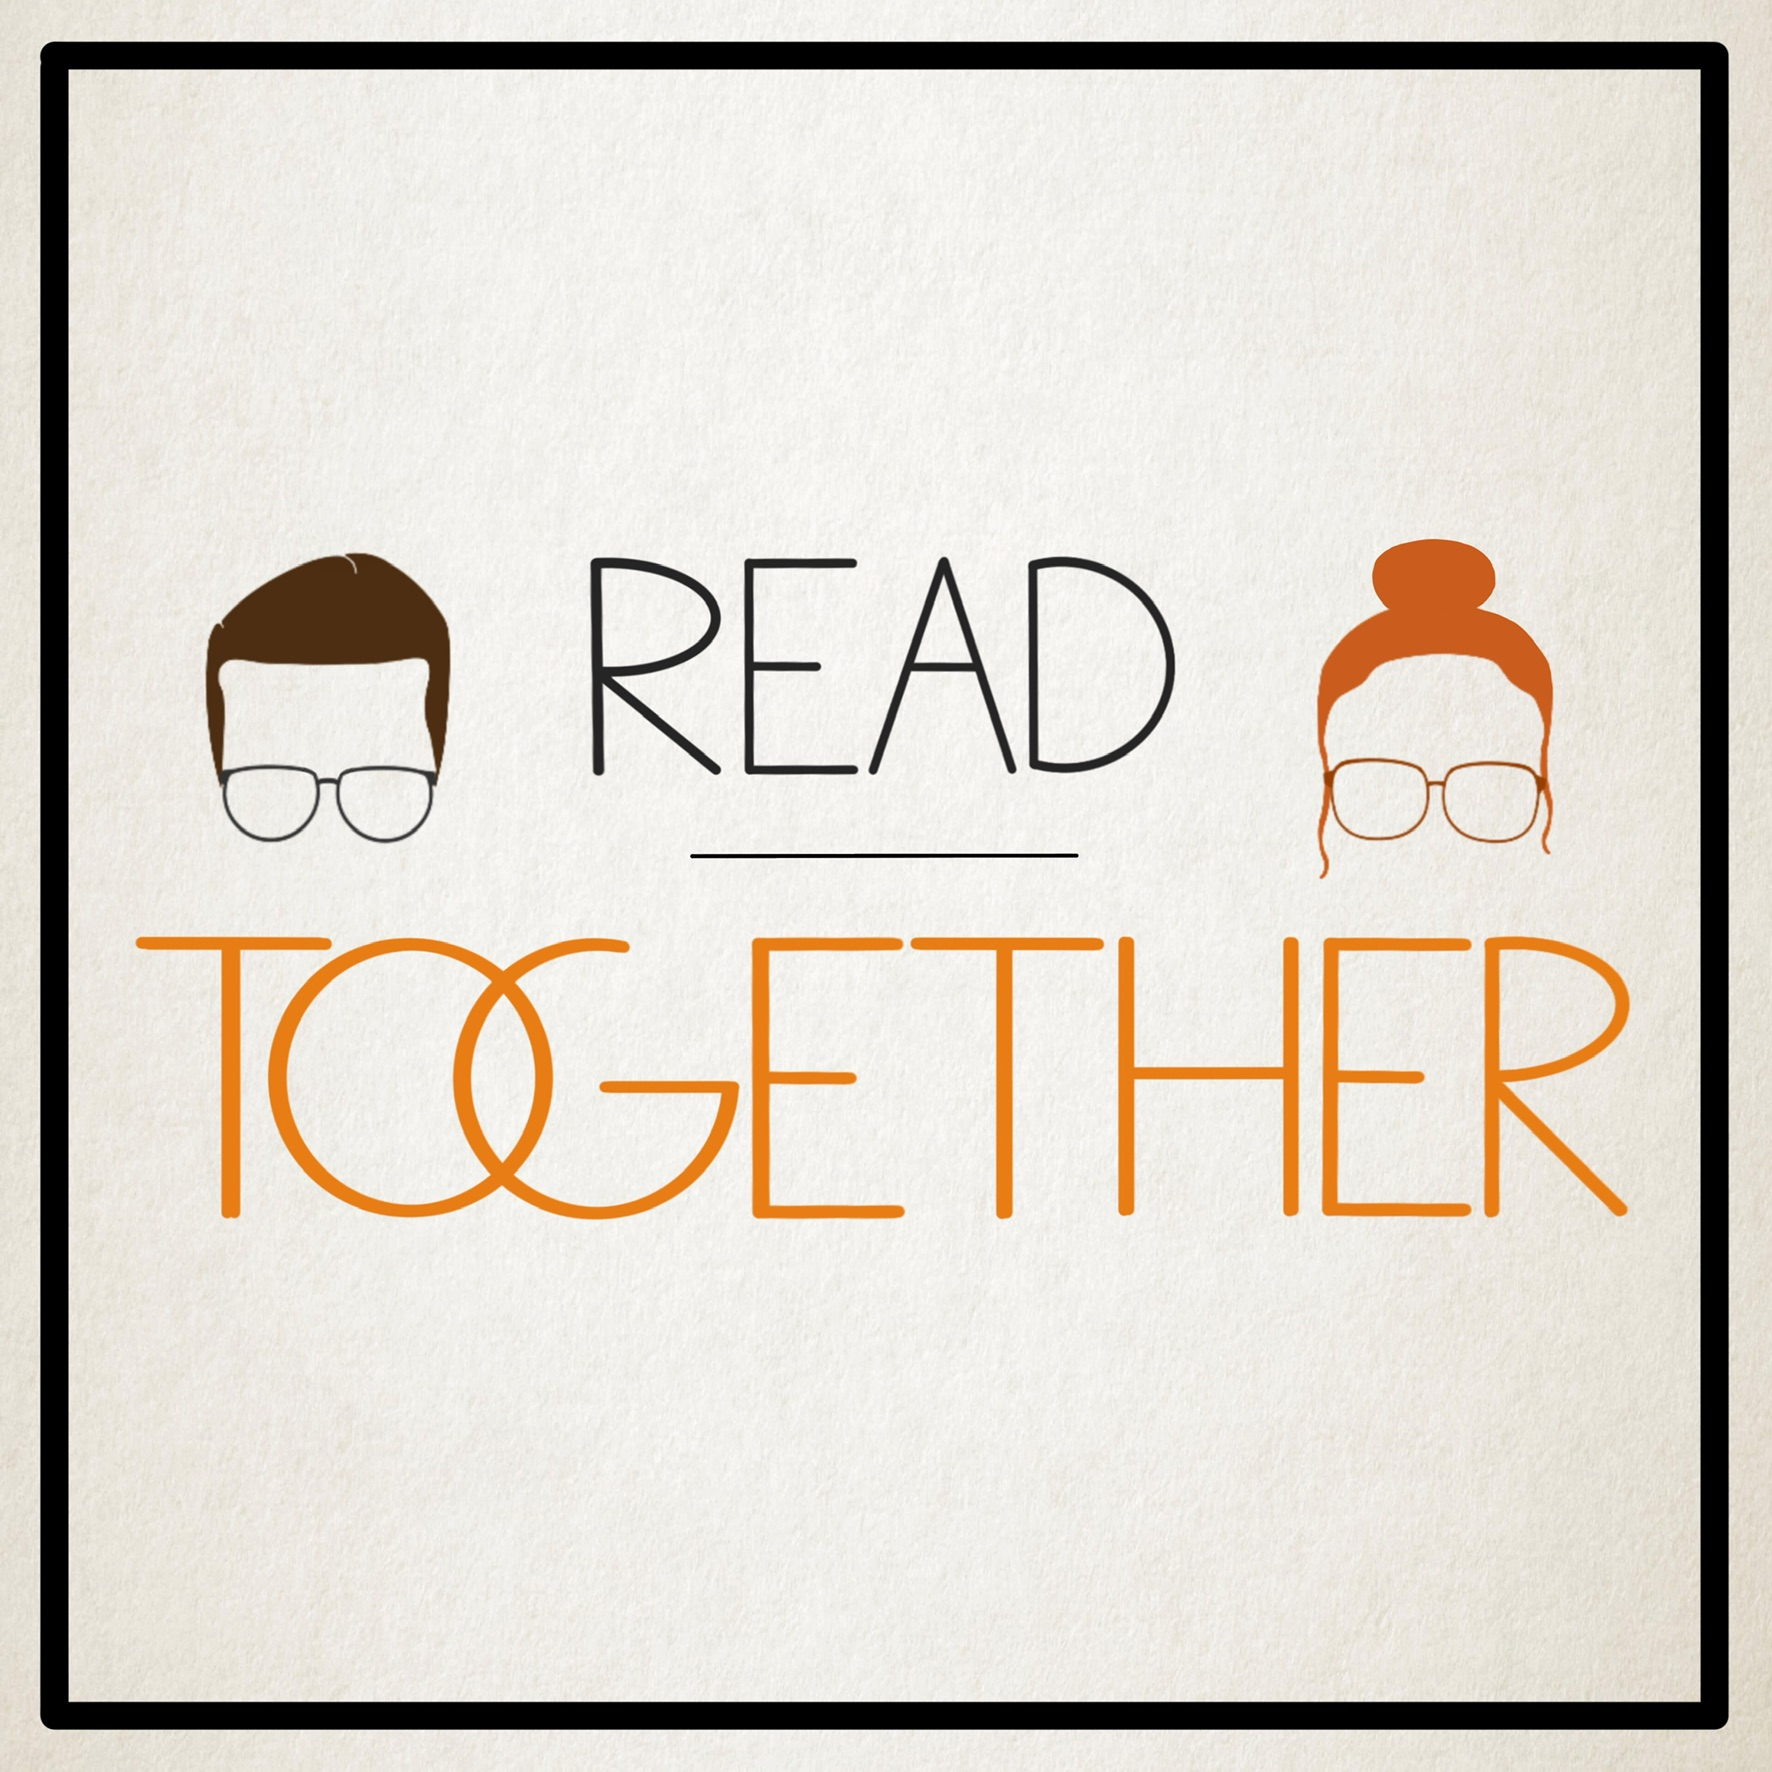 Read Together  is an inter-marital book discussion podcast. Every month, one spouse picks a book to read and discuss together. Hosted by  Doug  &  Erika Davis .